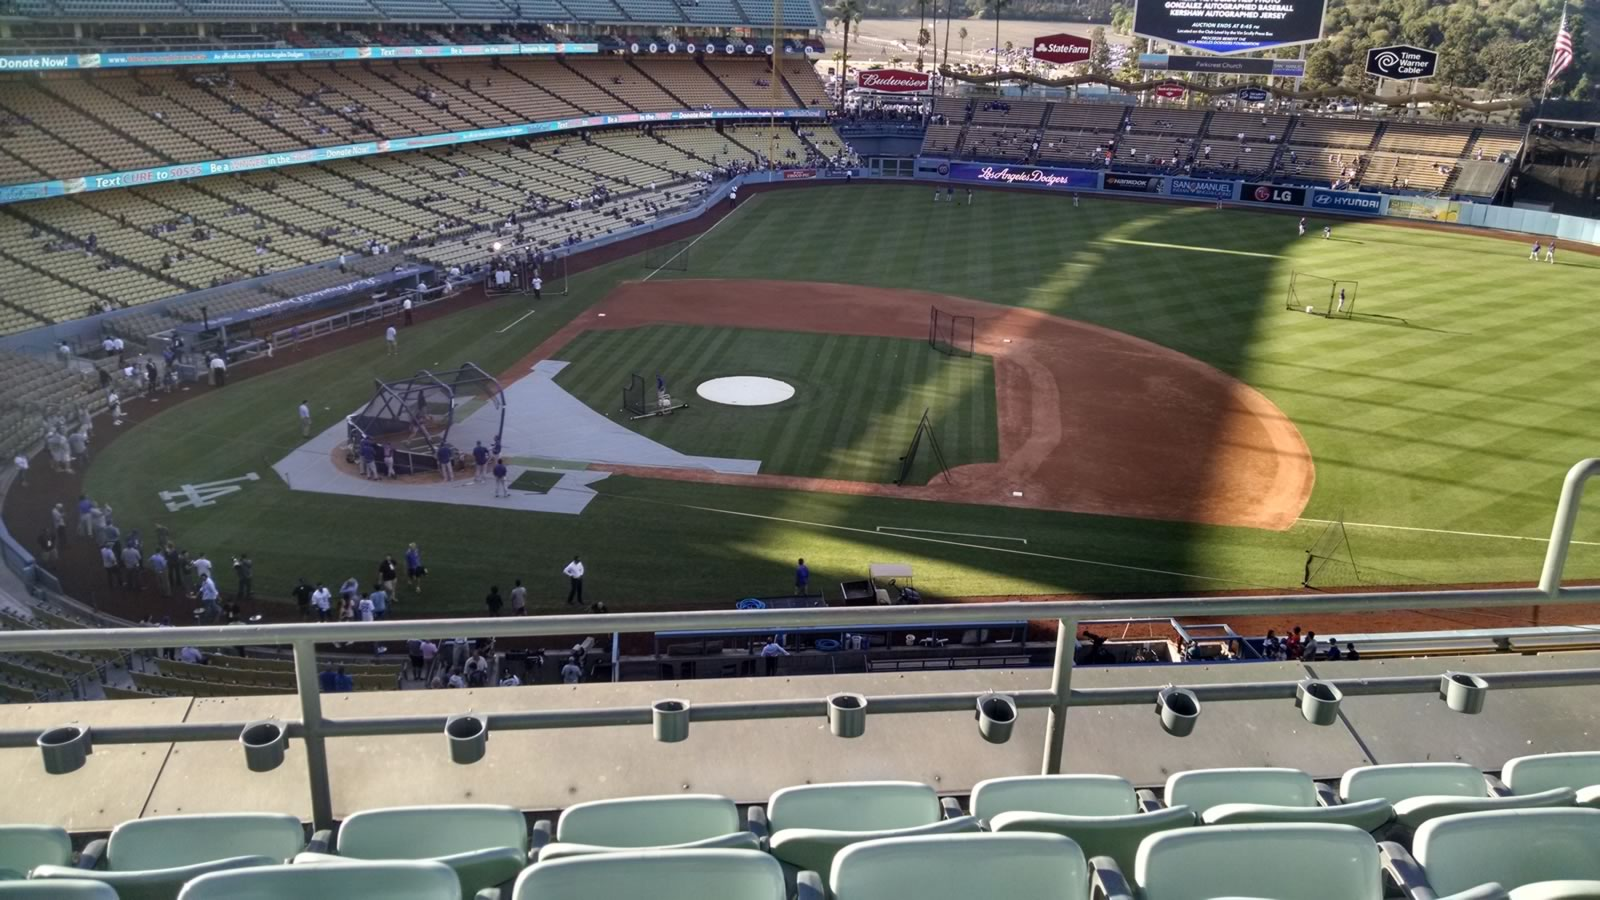 Seat View for Dodger Stadium Infield Reserve 16, Row D, Seat 14